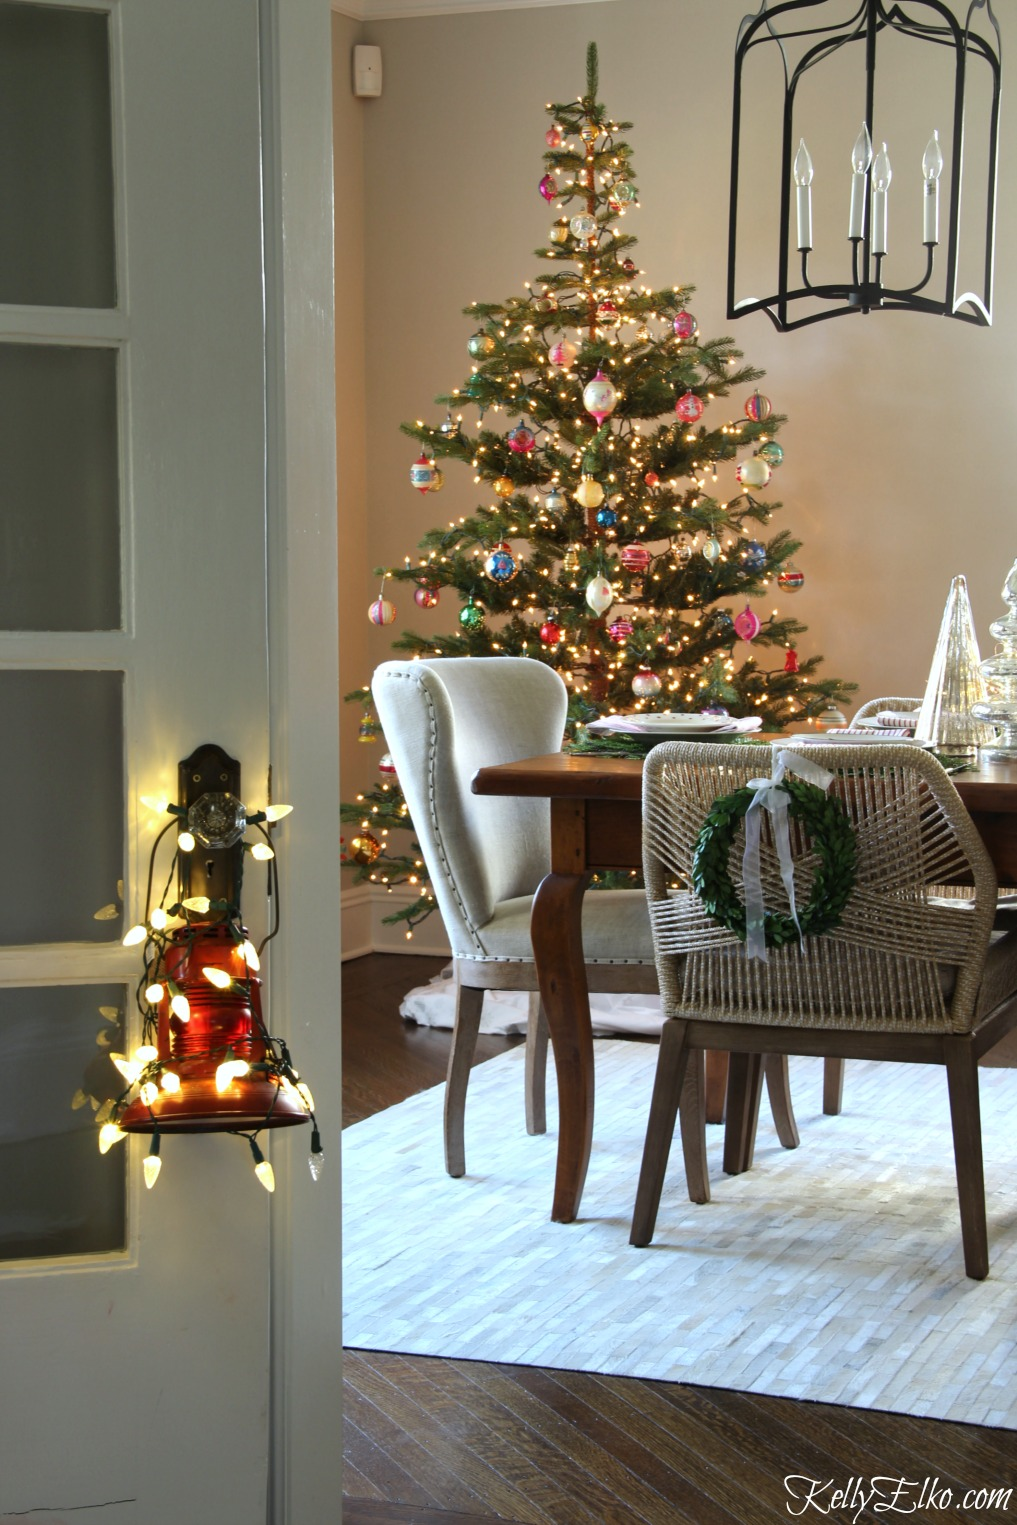 Creative Christmas Decorating Ideas - love the tree decked out in vintage Shiny Brite ornaments